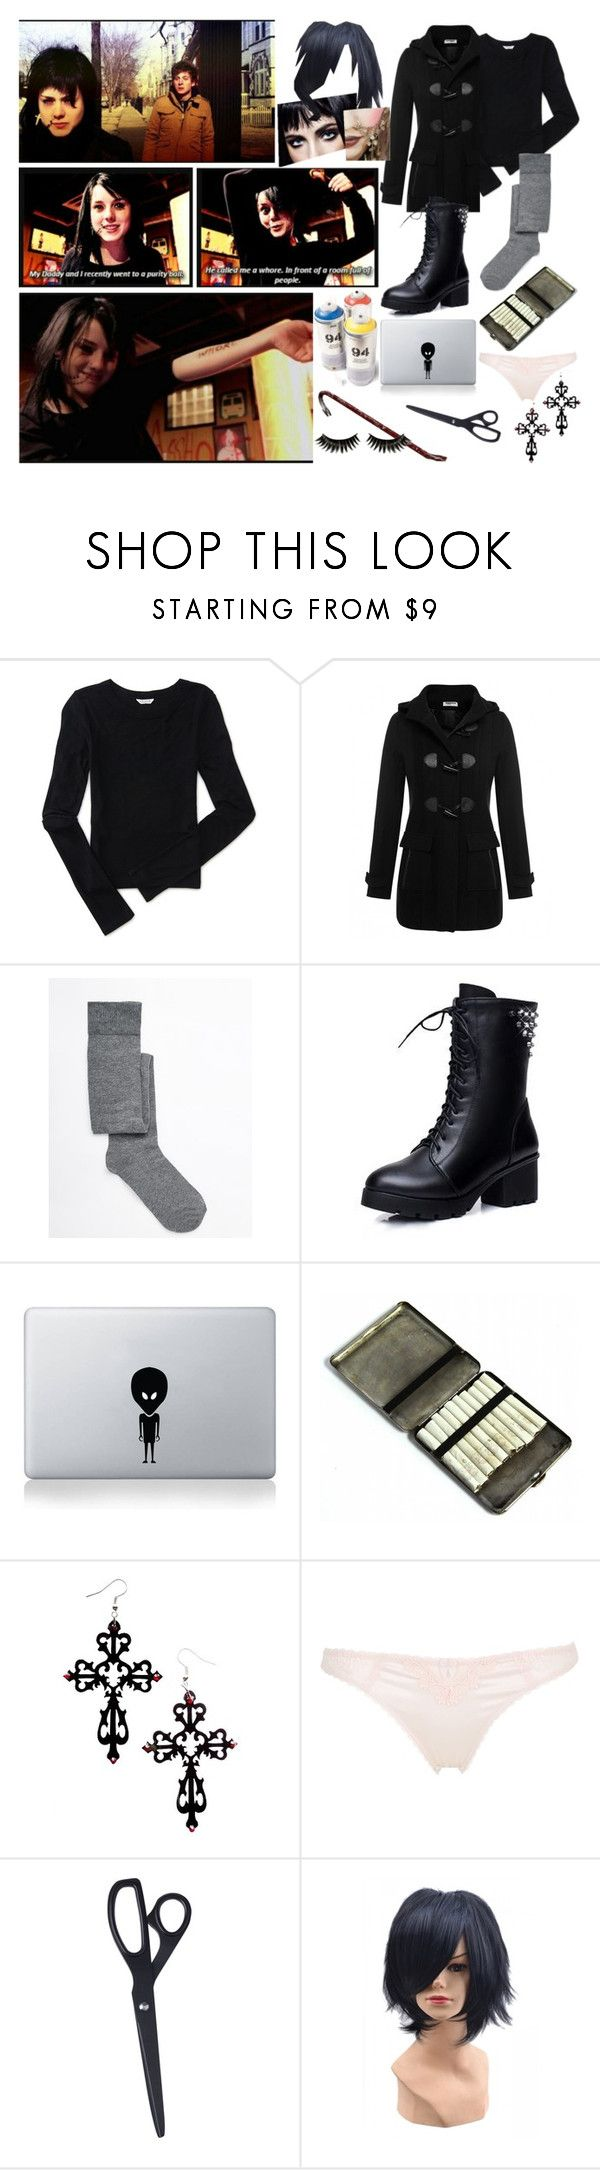 """""""Shameless: Karen Jackson (U.S)"""" by jeanettebeatrice ❤ liked on Polyvore featuring Aéropostale, ASOS, Hannah, STELLA McCARTNEY, HAY and Boohoo"""